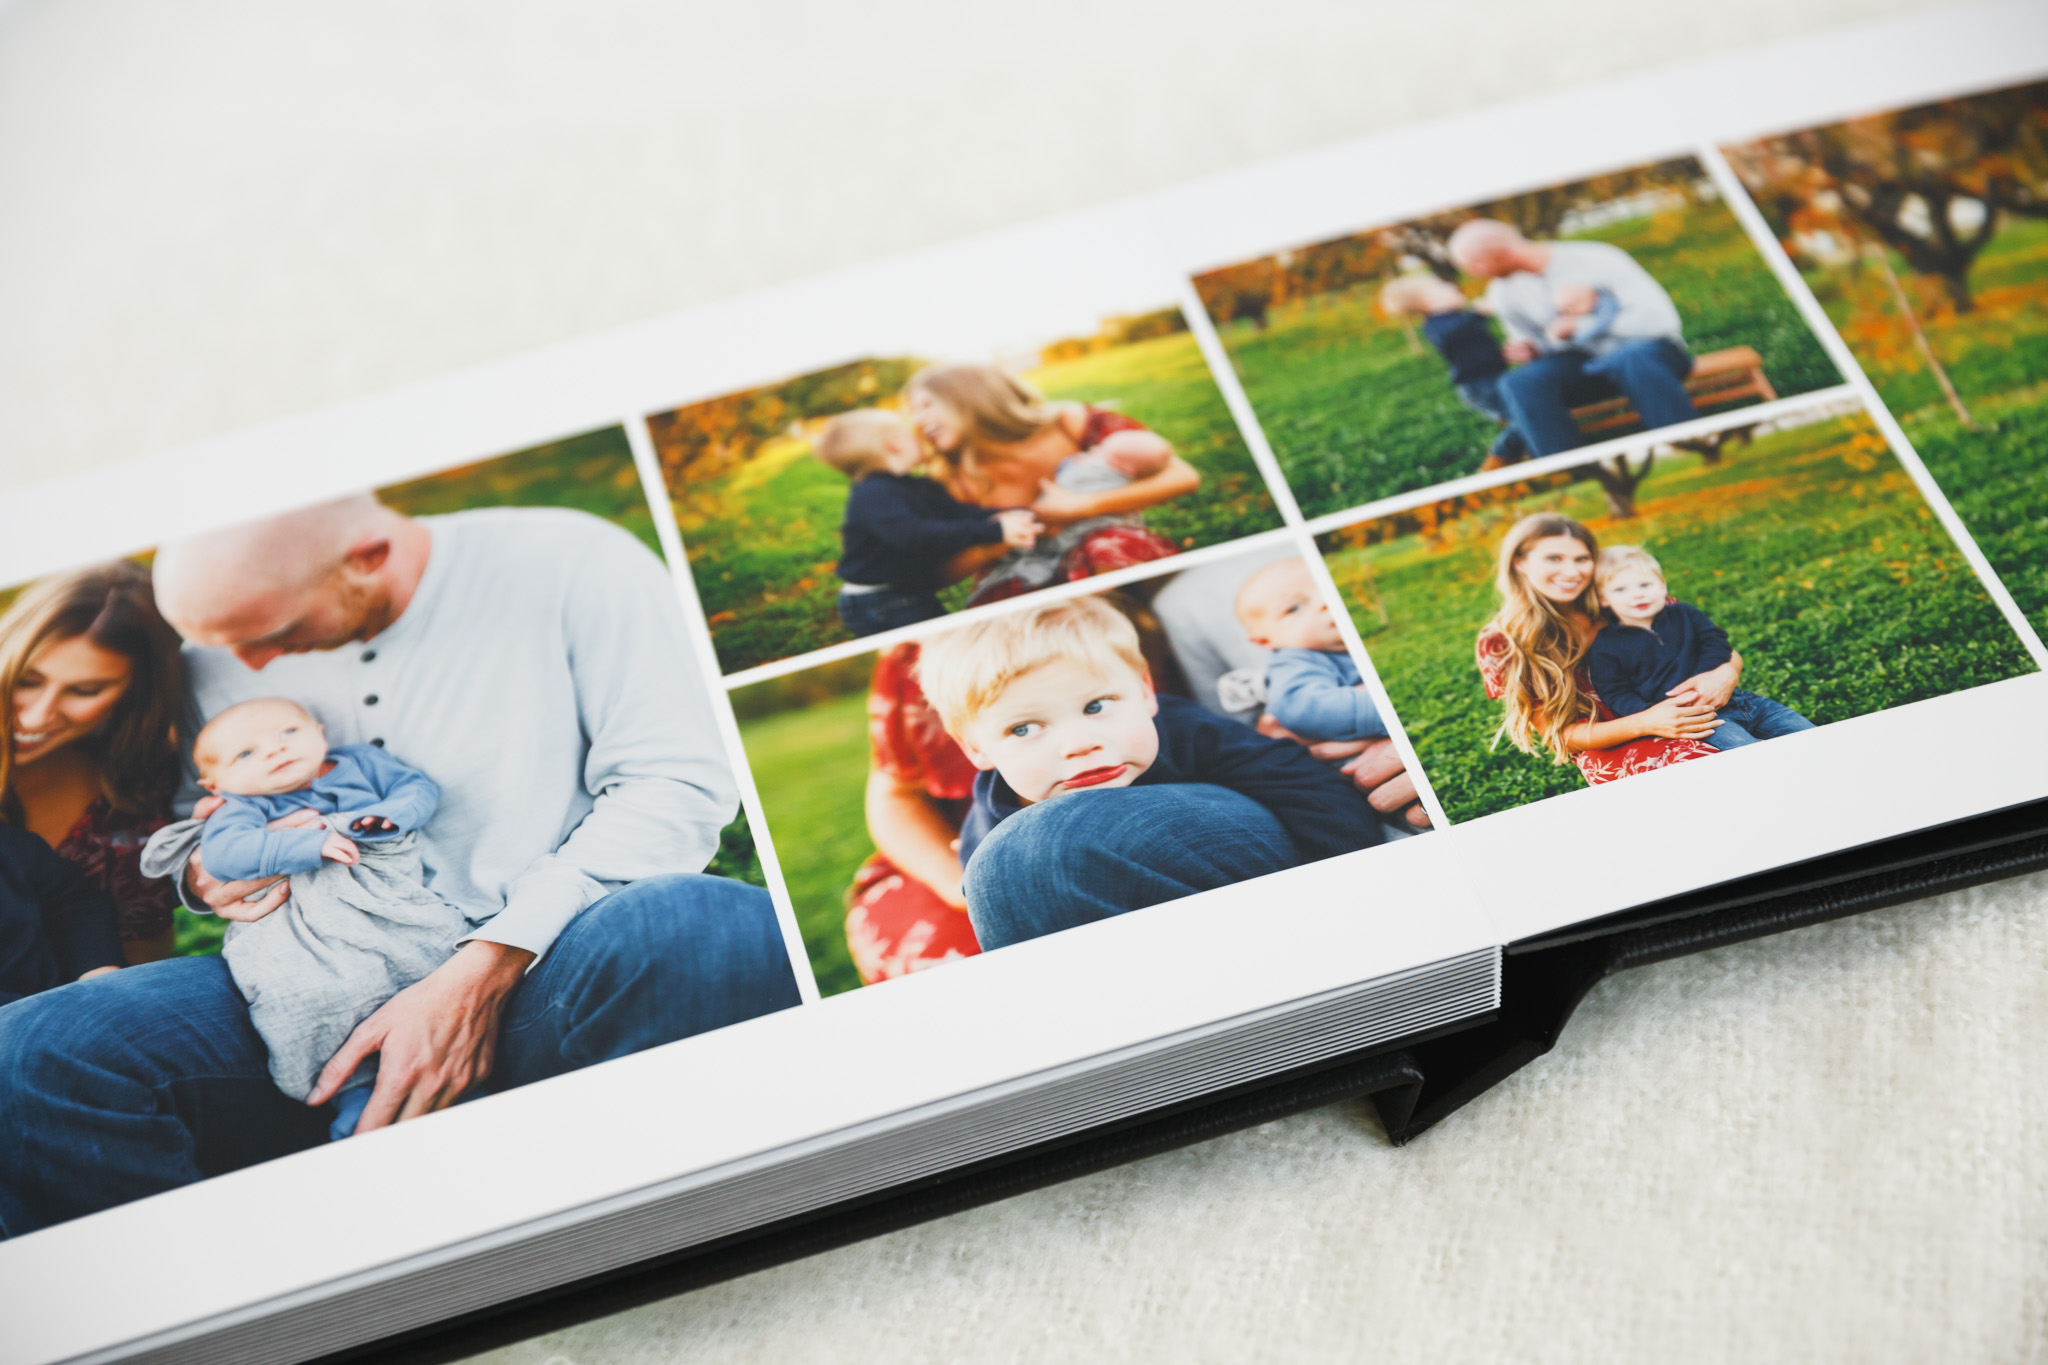 BookAlbumSamples2019-016__JulieGriffinPhotography.jpg